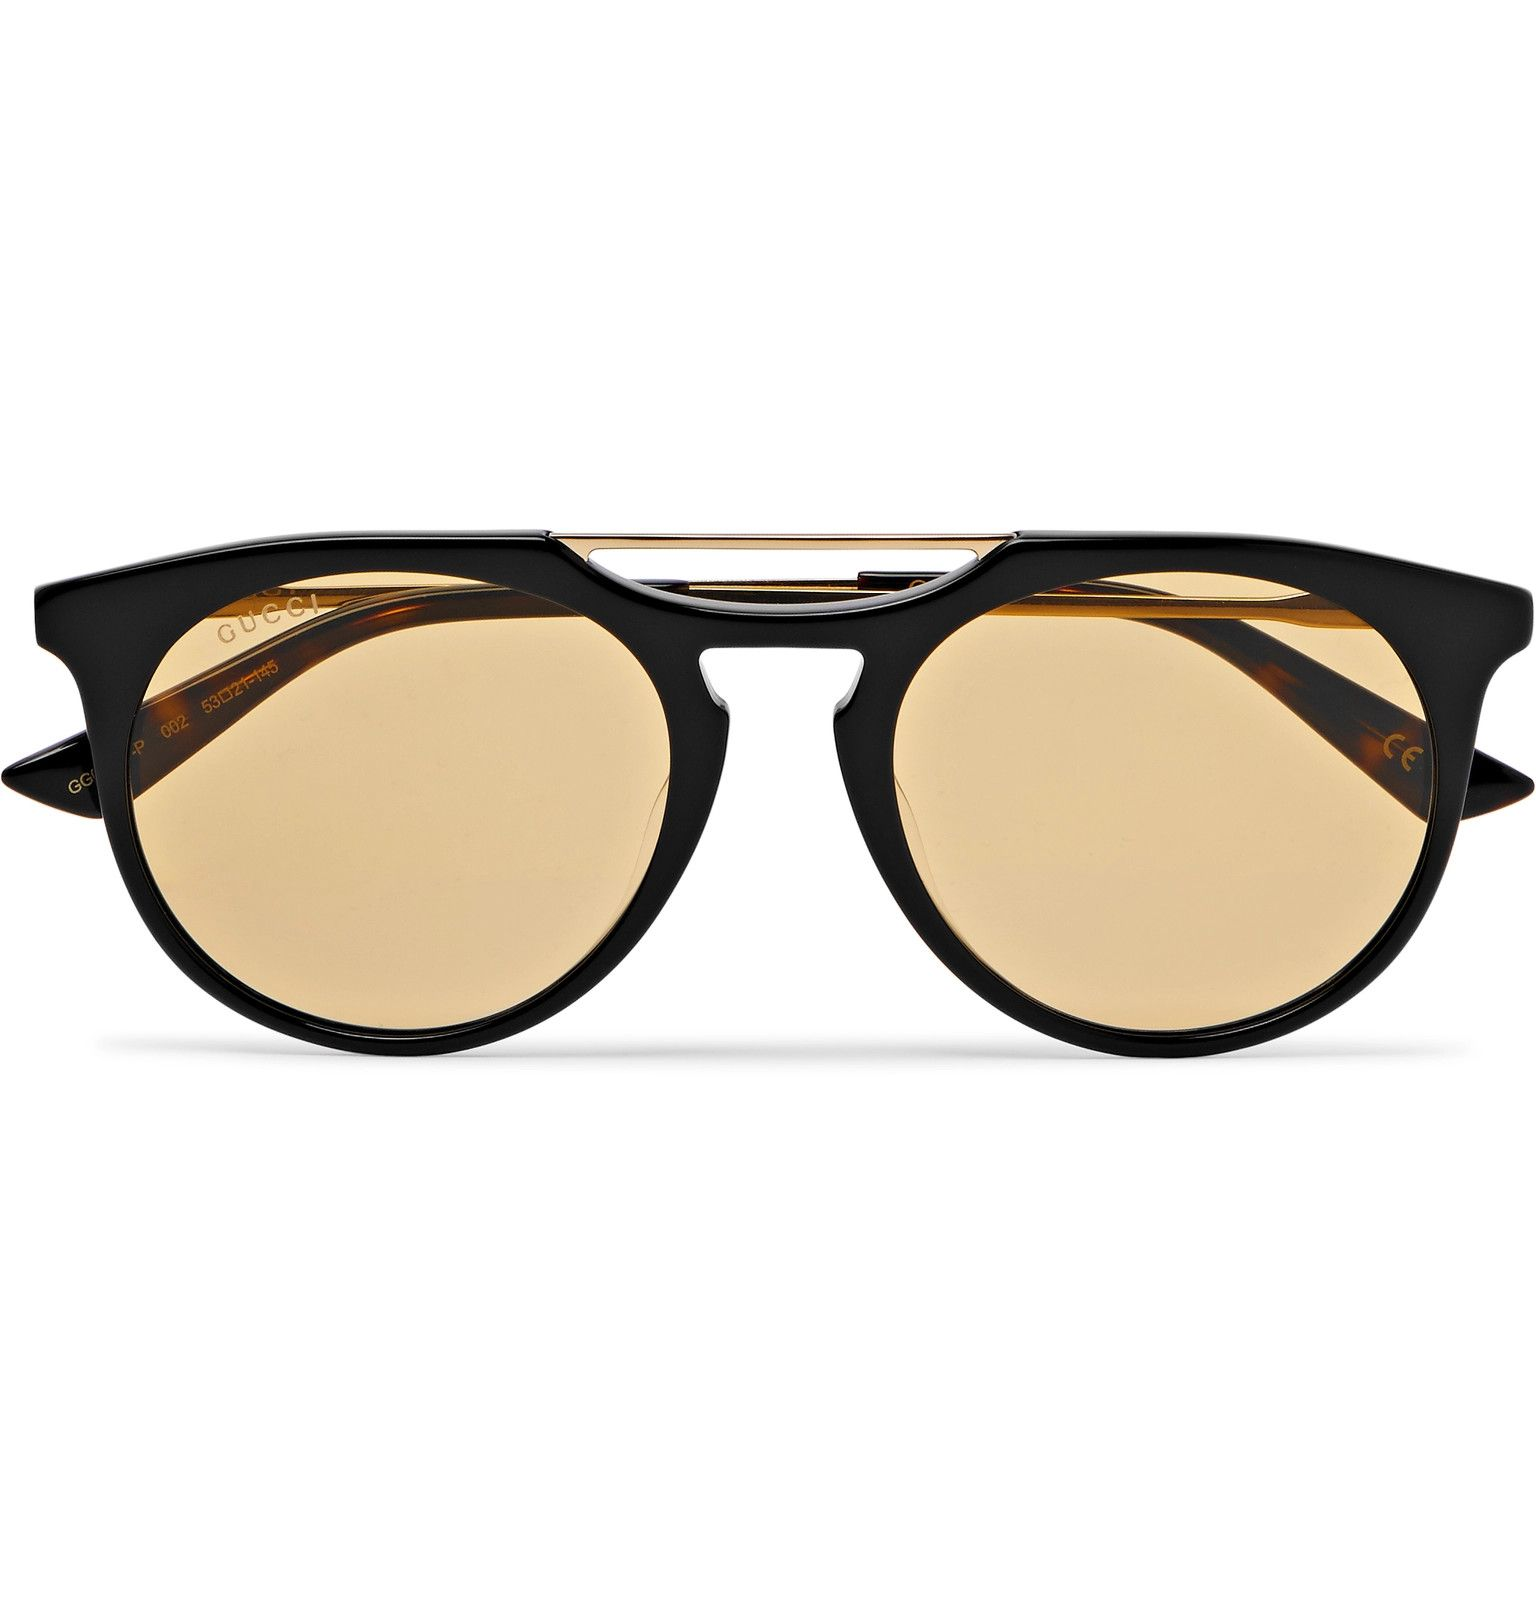 18bc3d8cf117 Gucci - Round-Frame Acetate and Gold-Tone Sunglasses | SPRING 20 ...